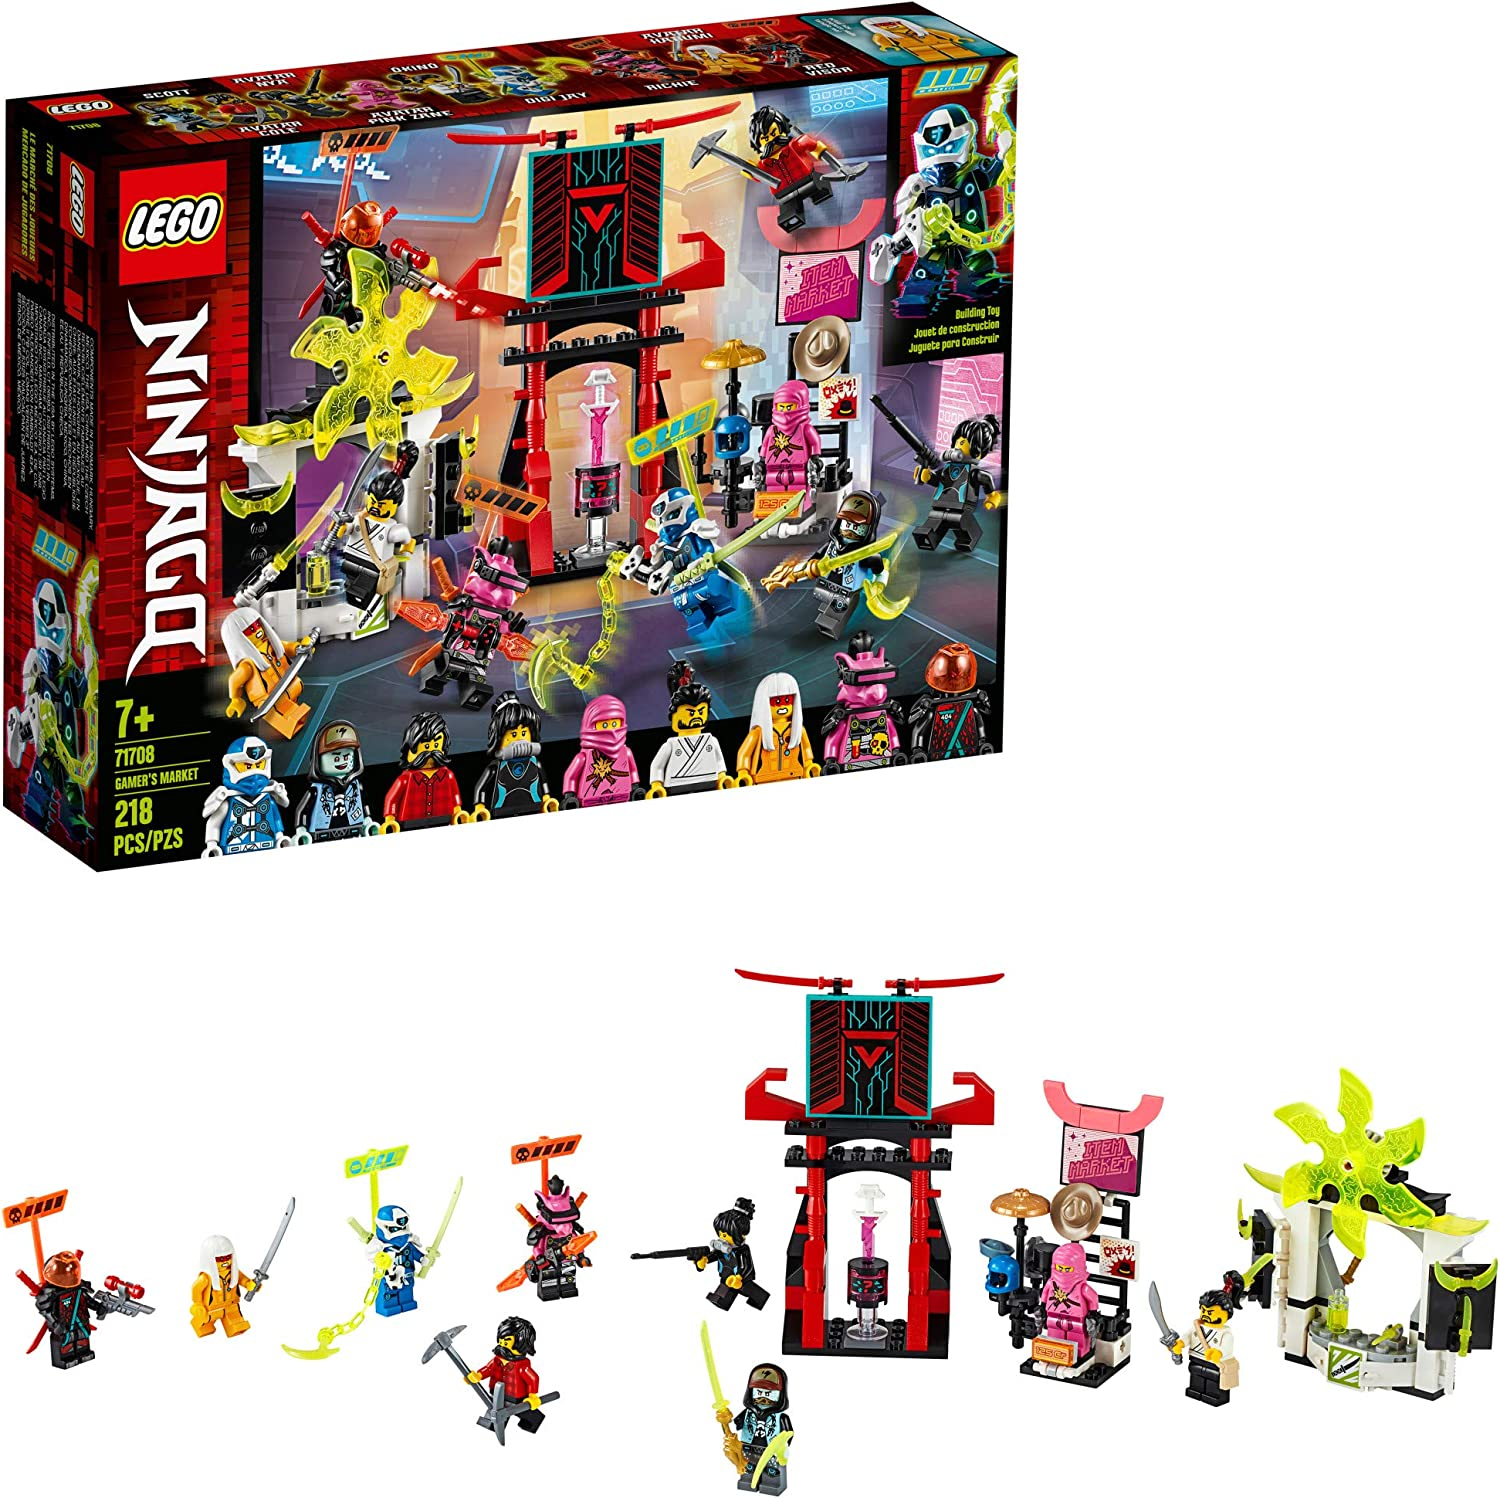 LEGO NINJAGO Gamers Market 71708 Ninja Market Building Kit, New 2020 (218 Pieces)